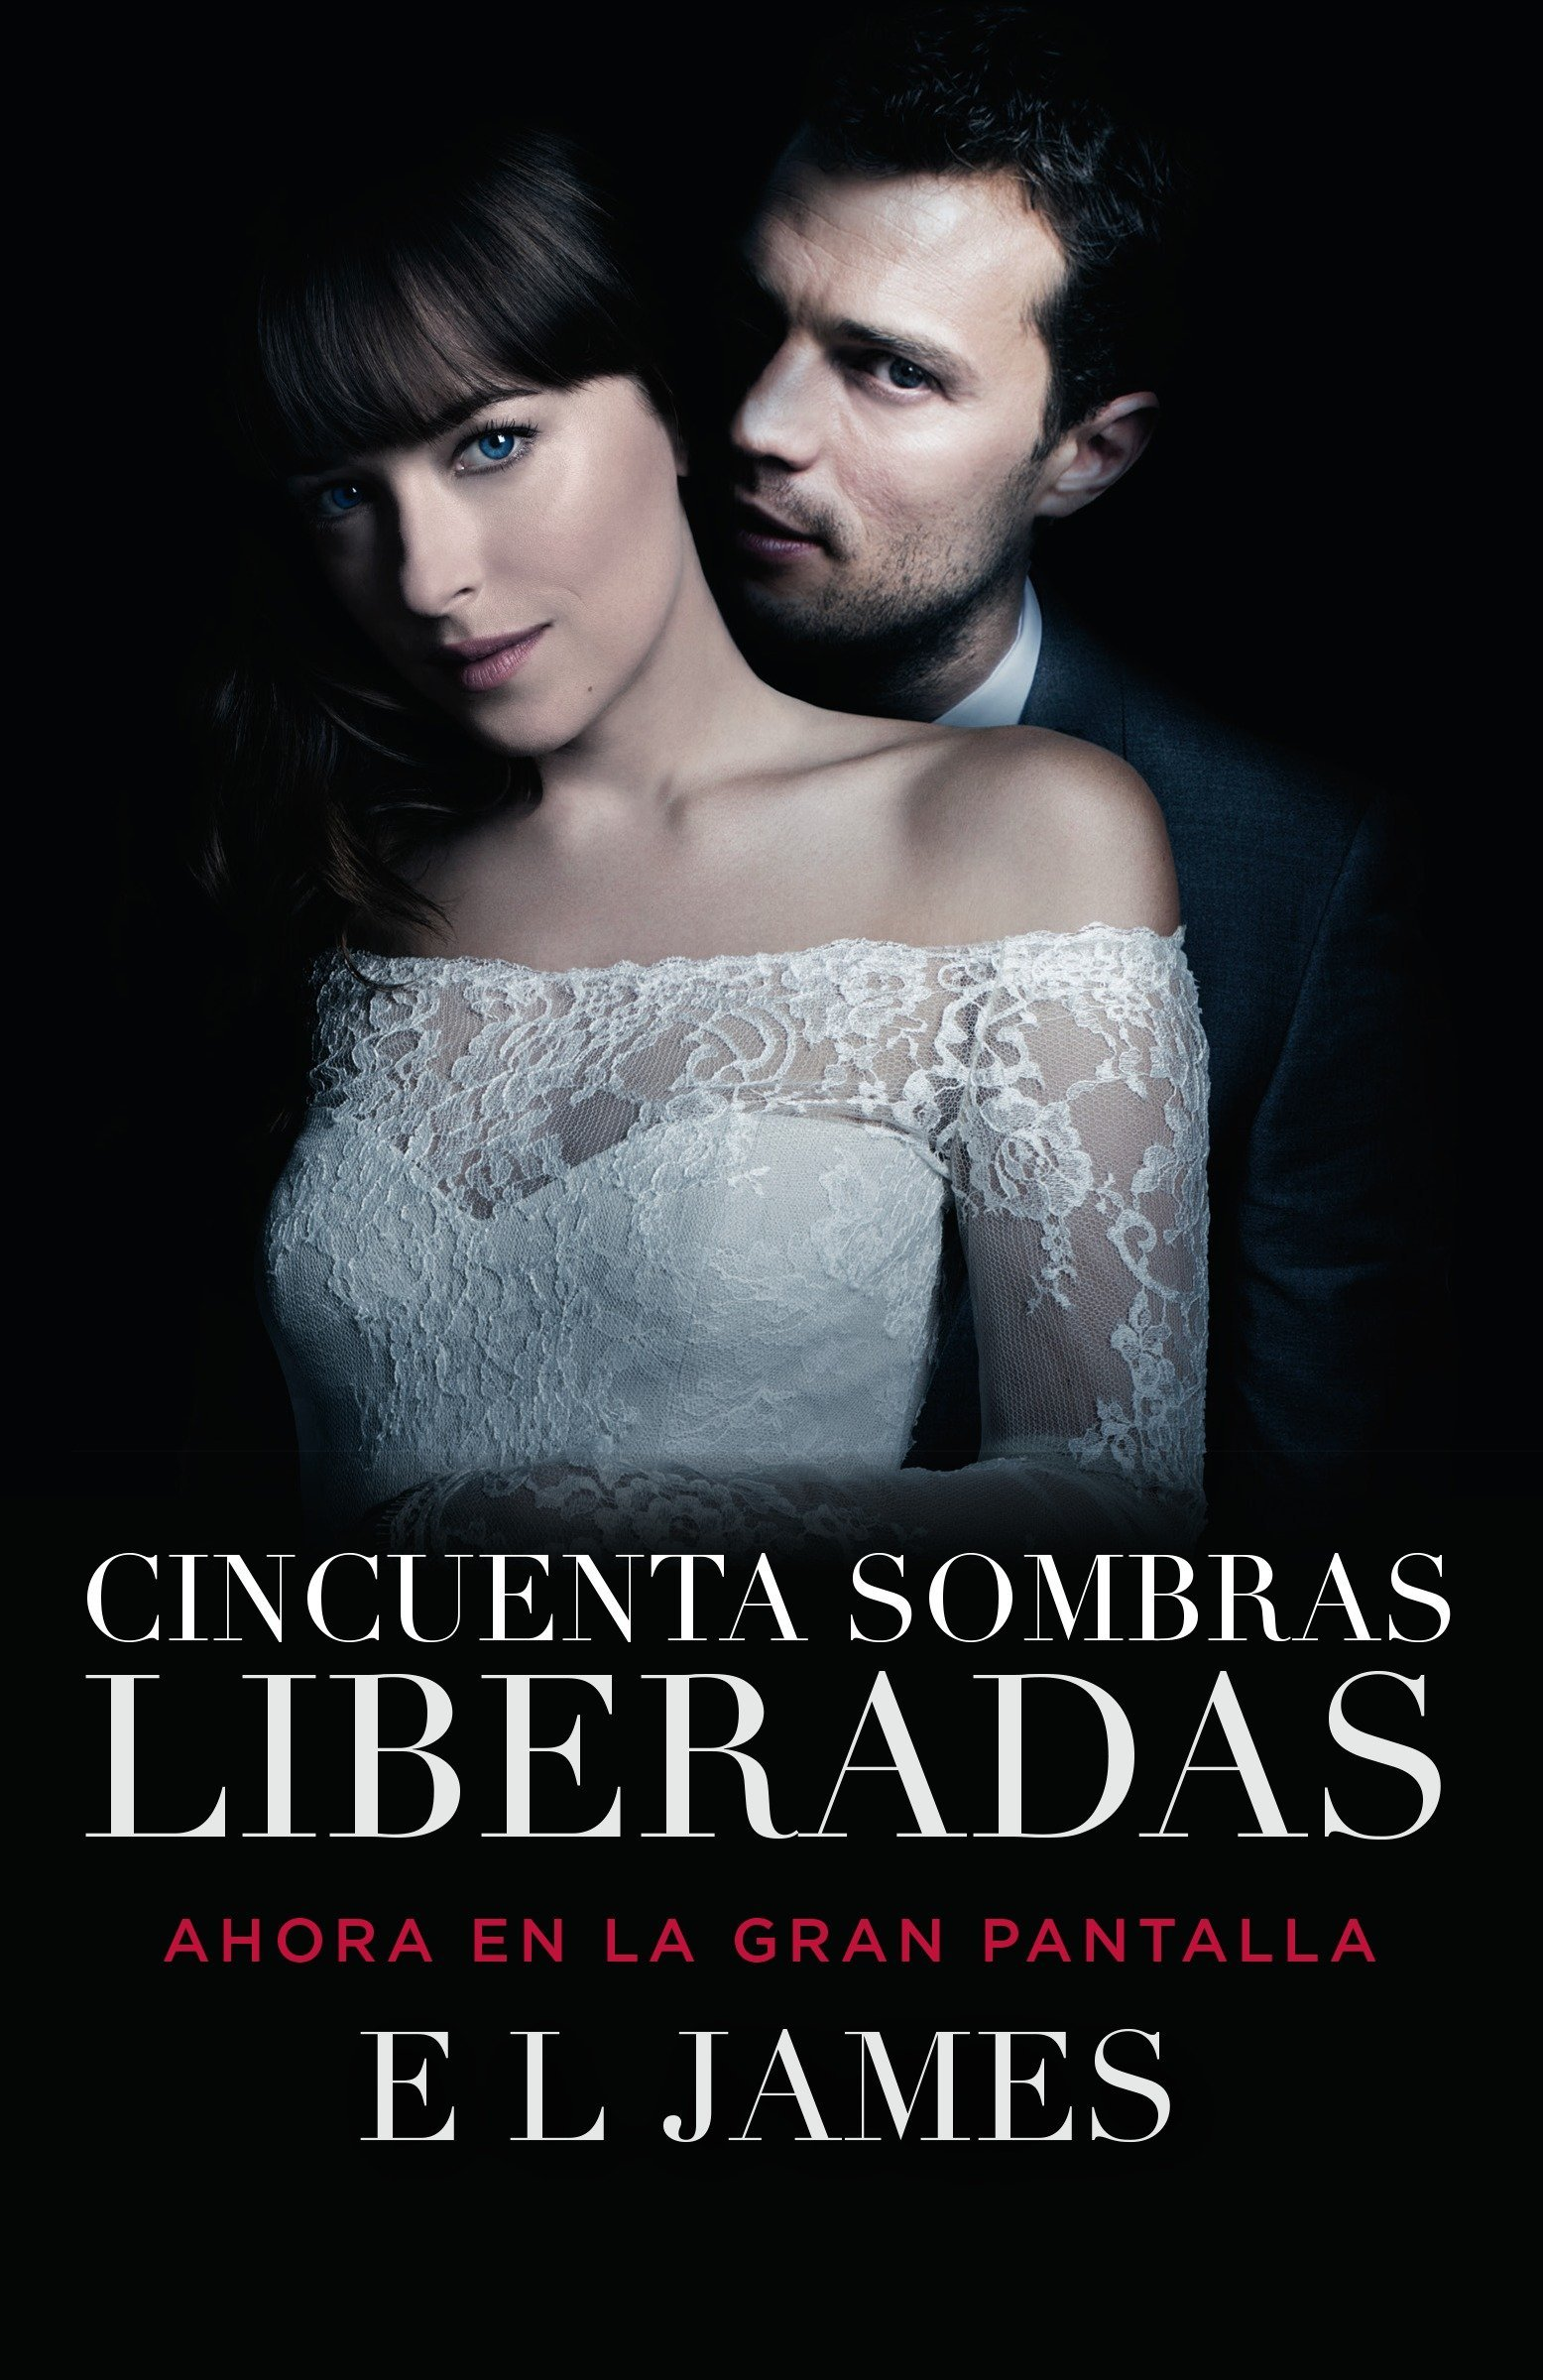 Cincuenta sombras liberadas (Movie Tie-in): Fifty Shades Freed MTI - Spanish-language edition (Spanish Edition) by Vintage Espanol